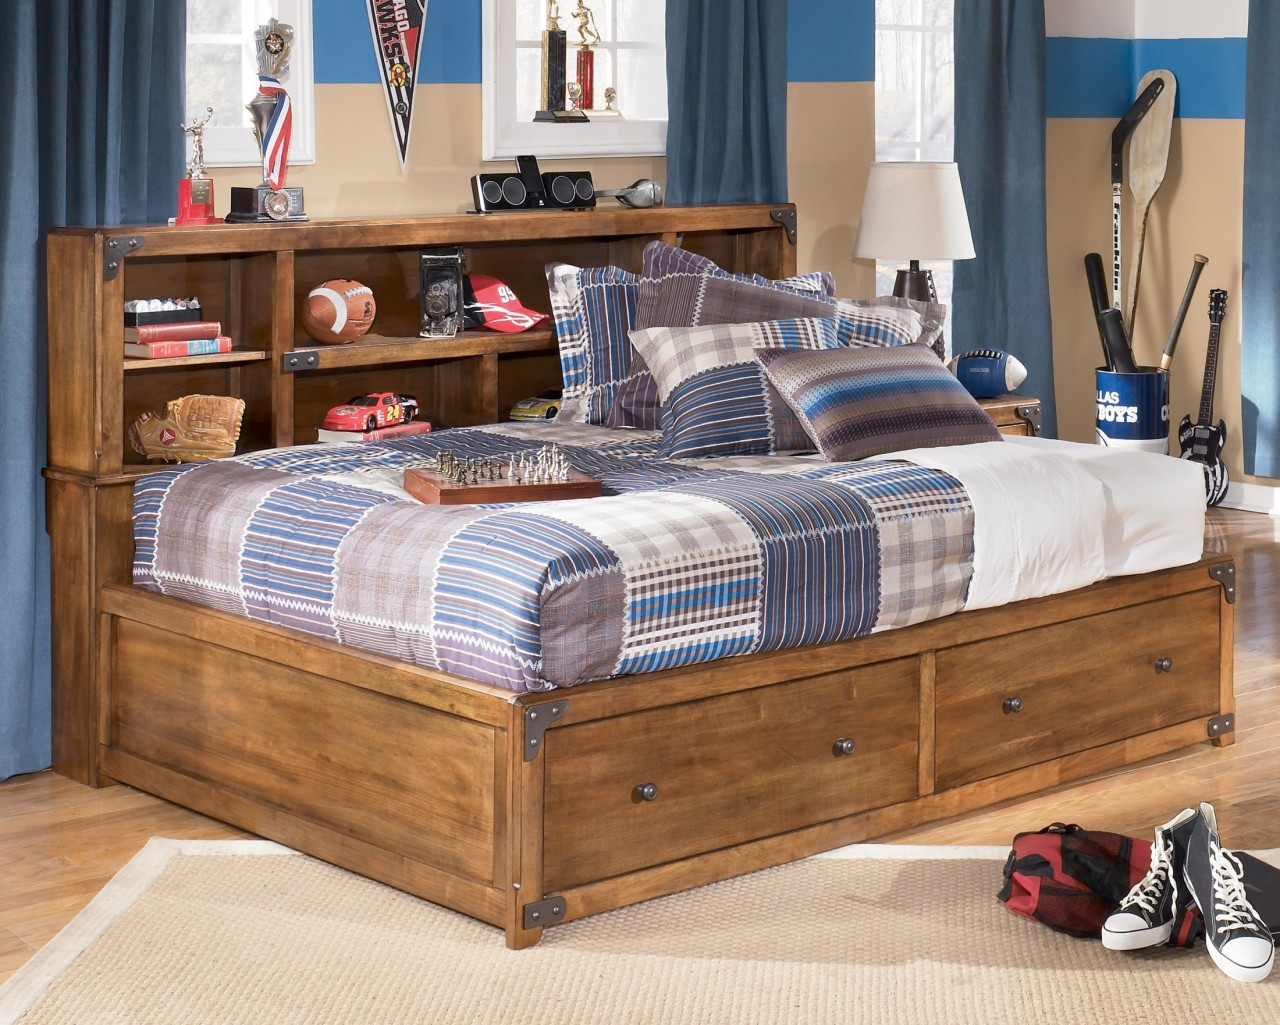 Bed With Headboard Storage Kids